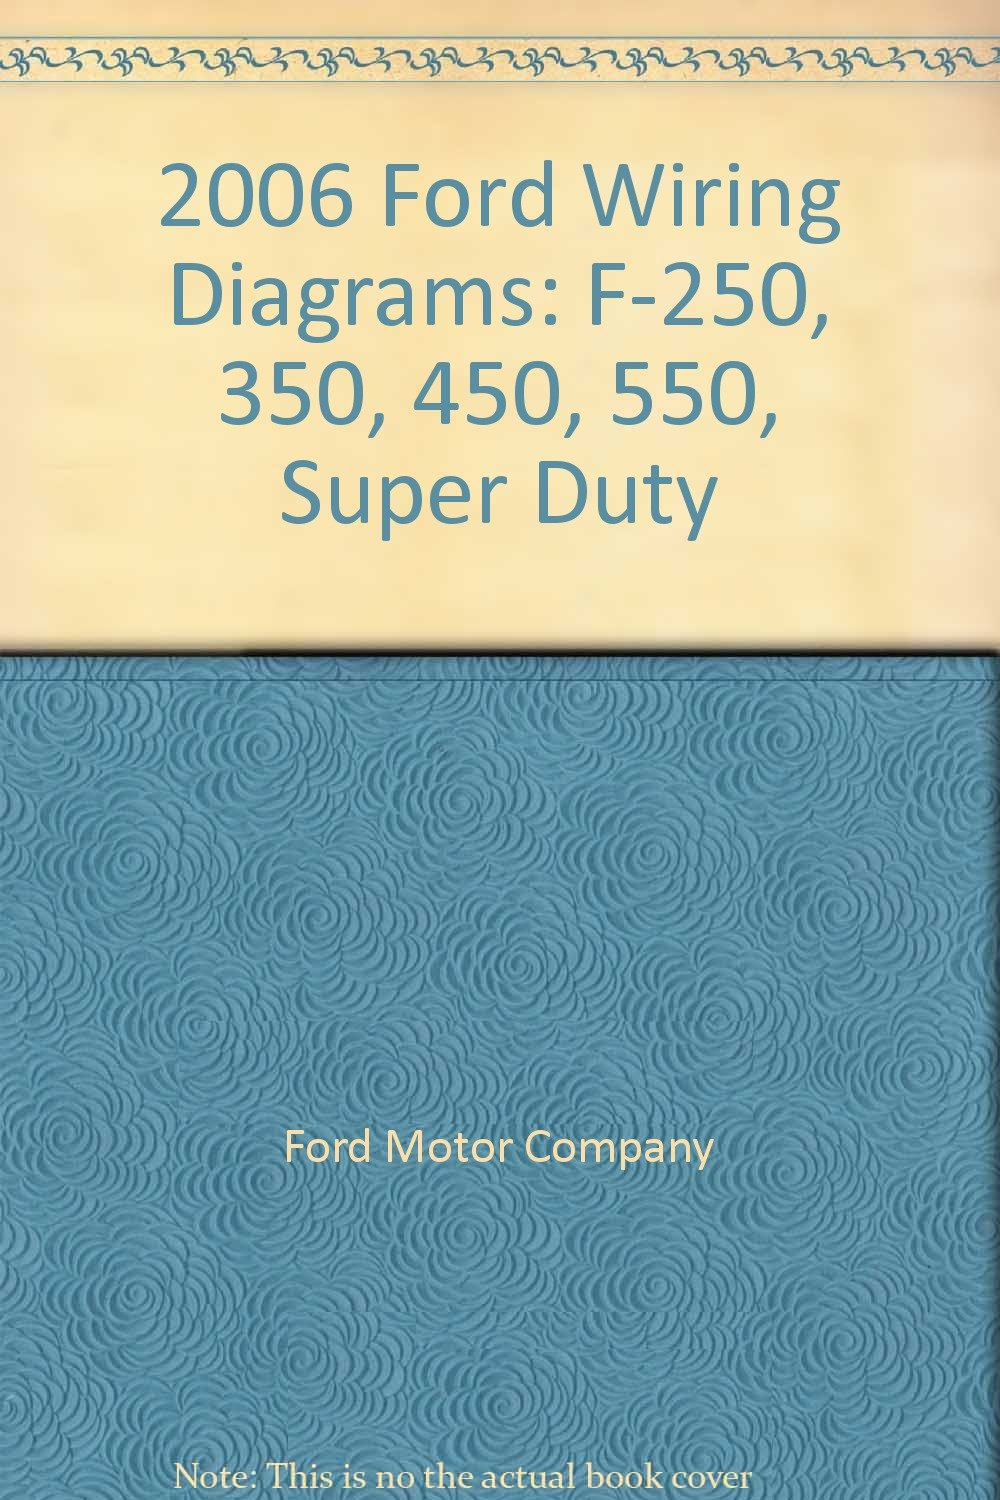 2006 F250 Wiring Diagram Ford Diagrams F 250 350 450 550 Super Duty Motor Company Books